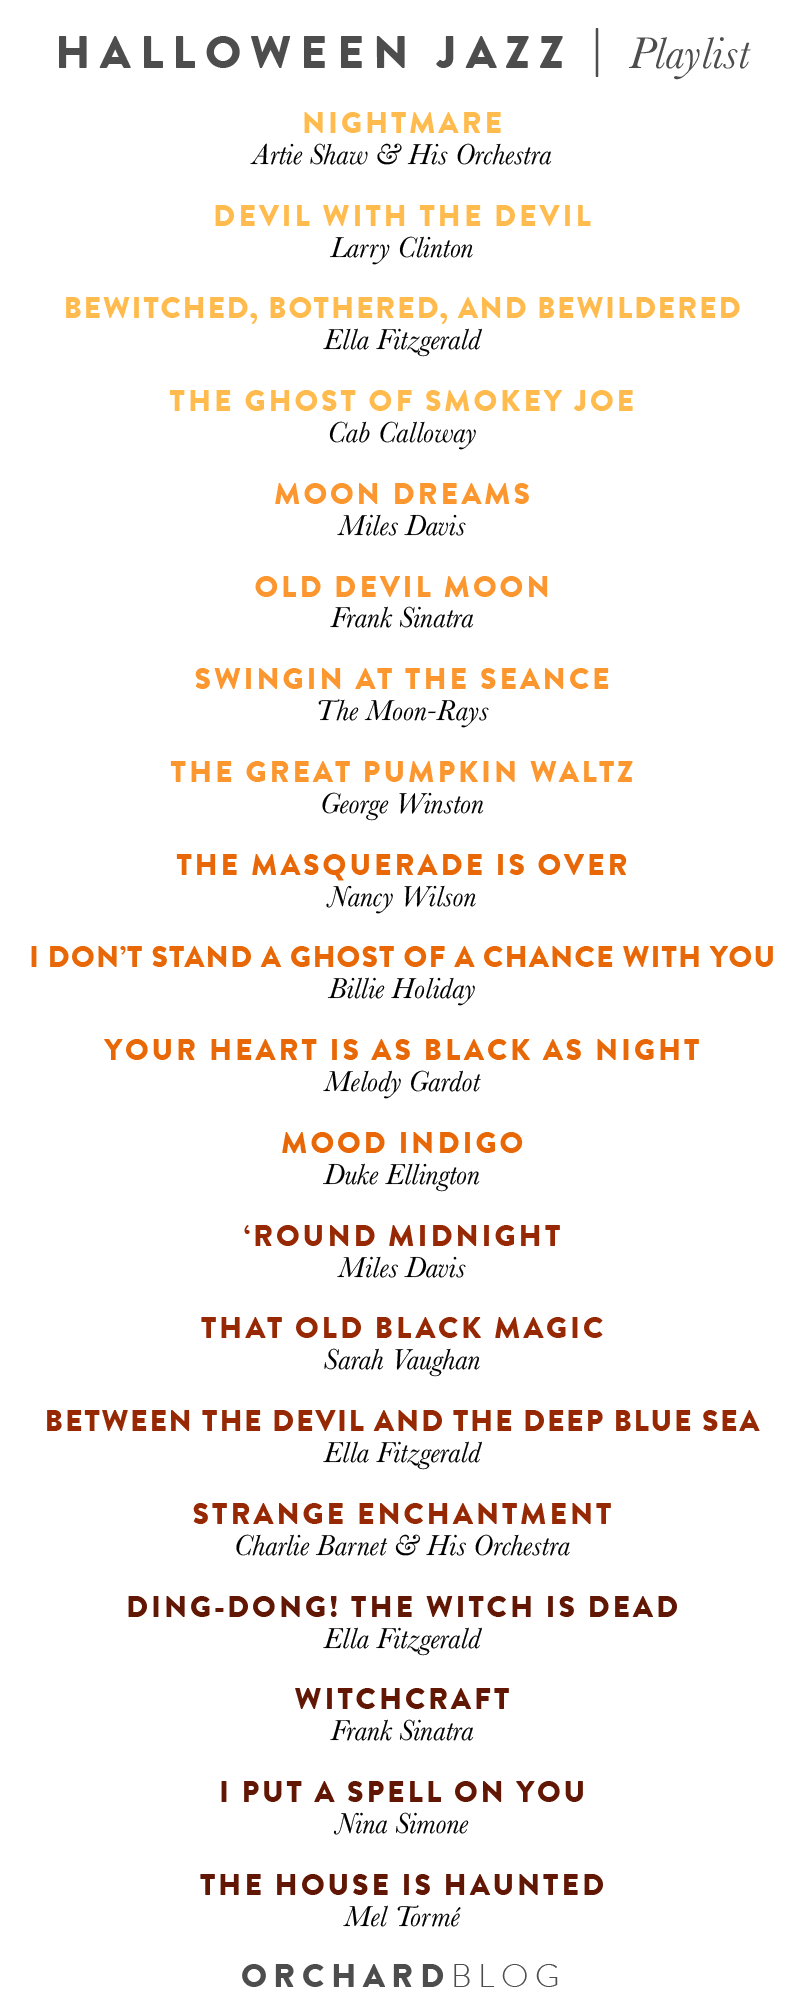 Halloween Jazz Playlist